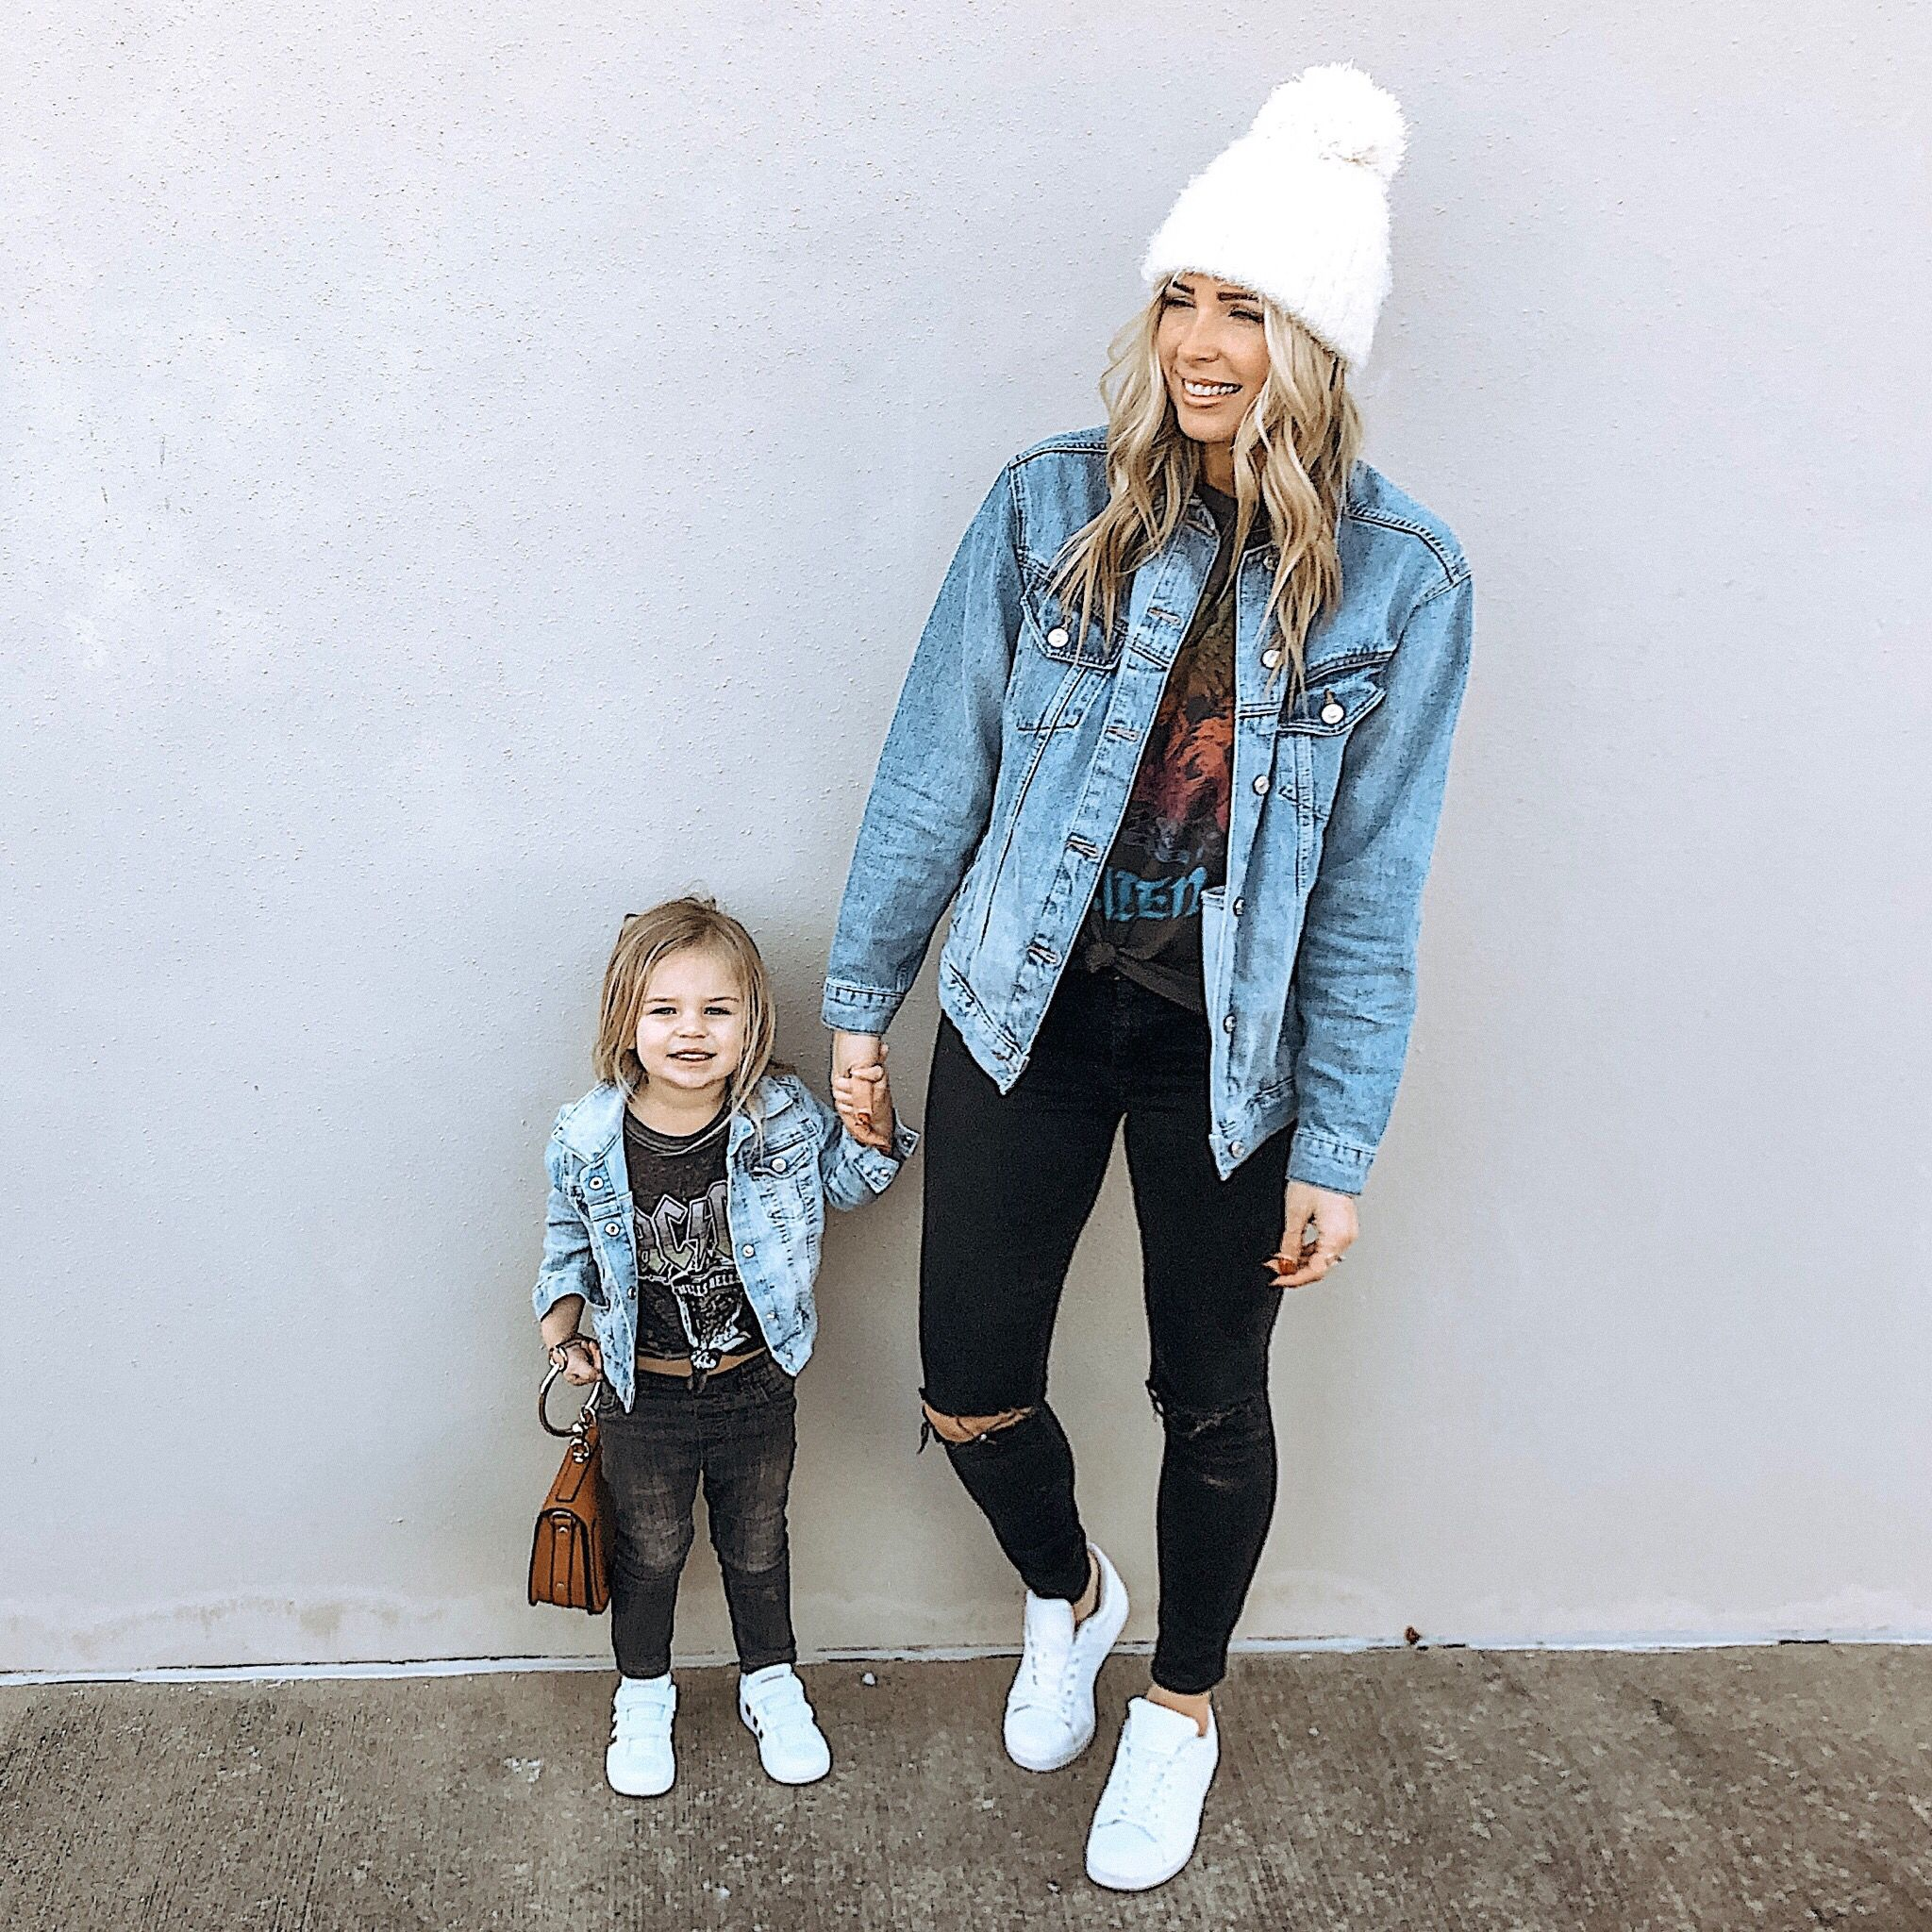 Graphic Tee The Sue Style File Utility Jacket Outfit Kids Denim Jacket Denim Jacket Outfit Winter [ 2048 x 2048 Pixel ]